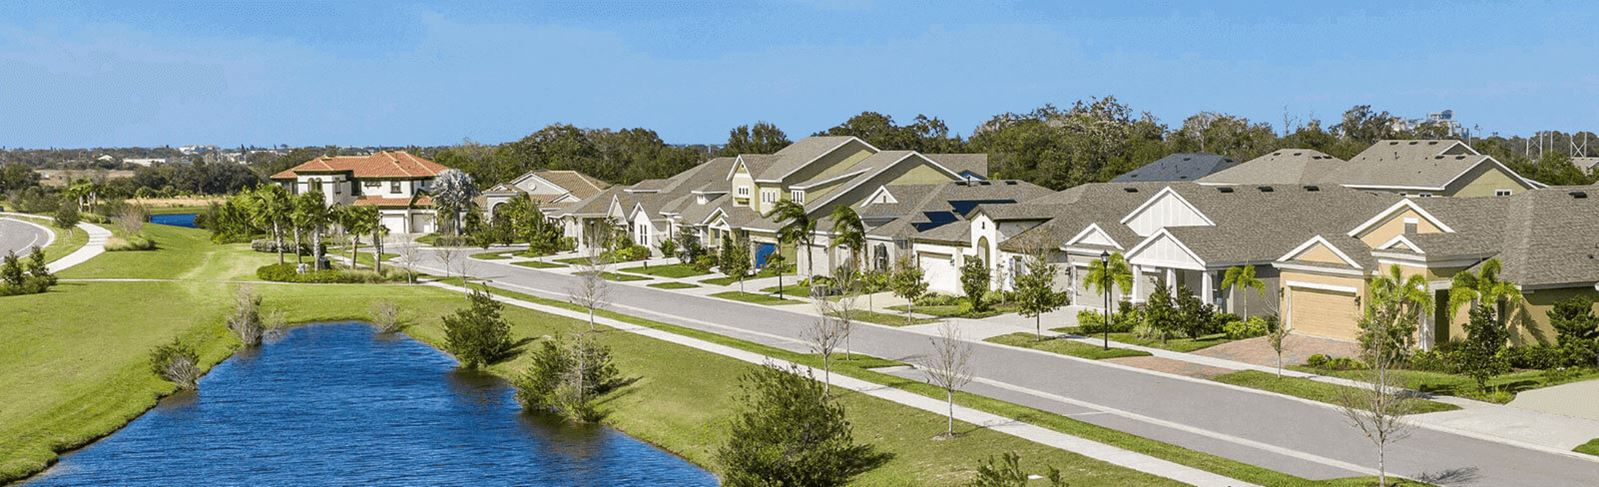 Homes along a lake in Waterset, new homes in Apollo Beach, FL.